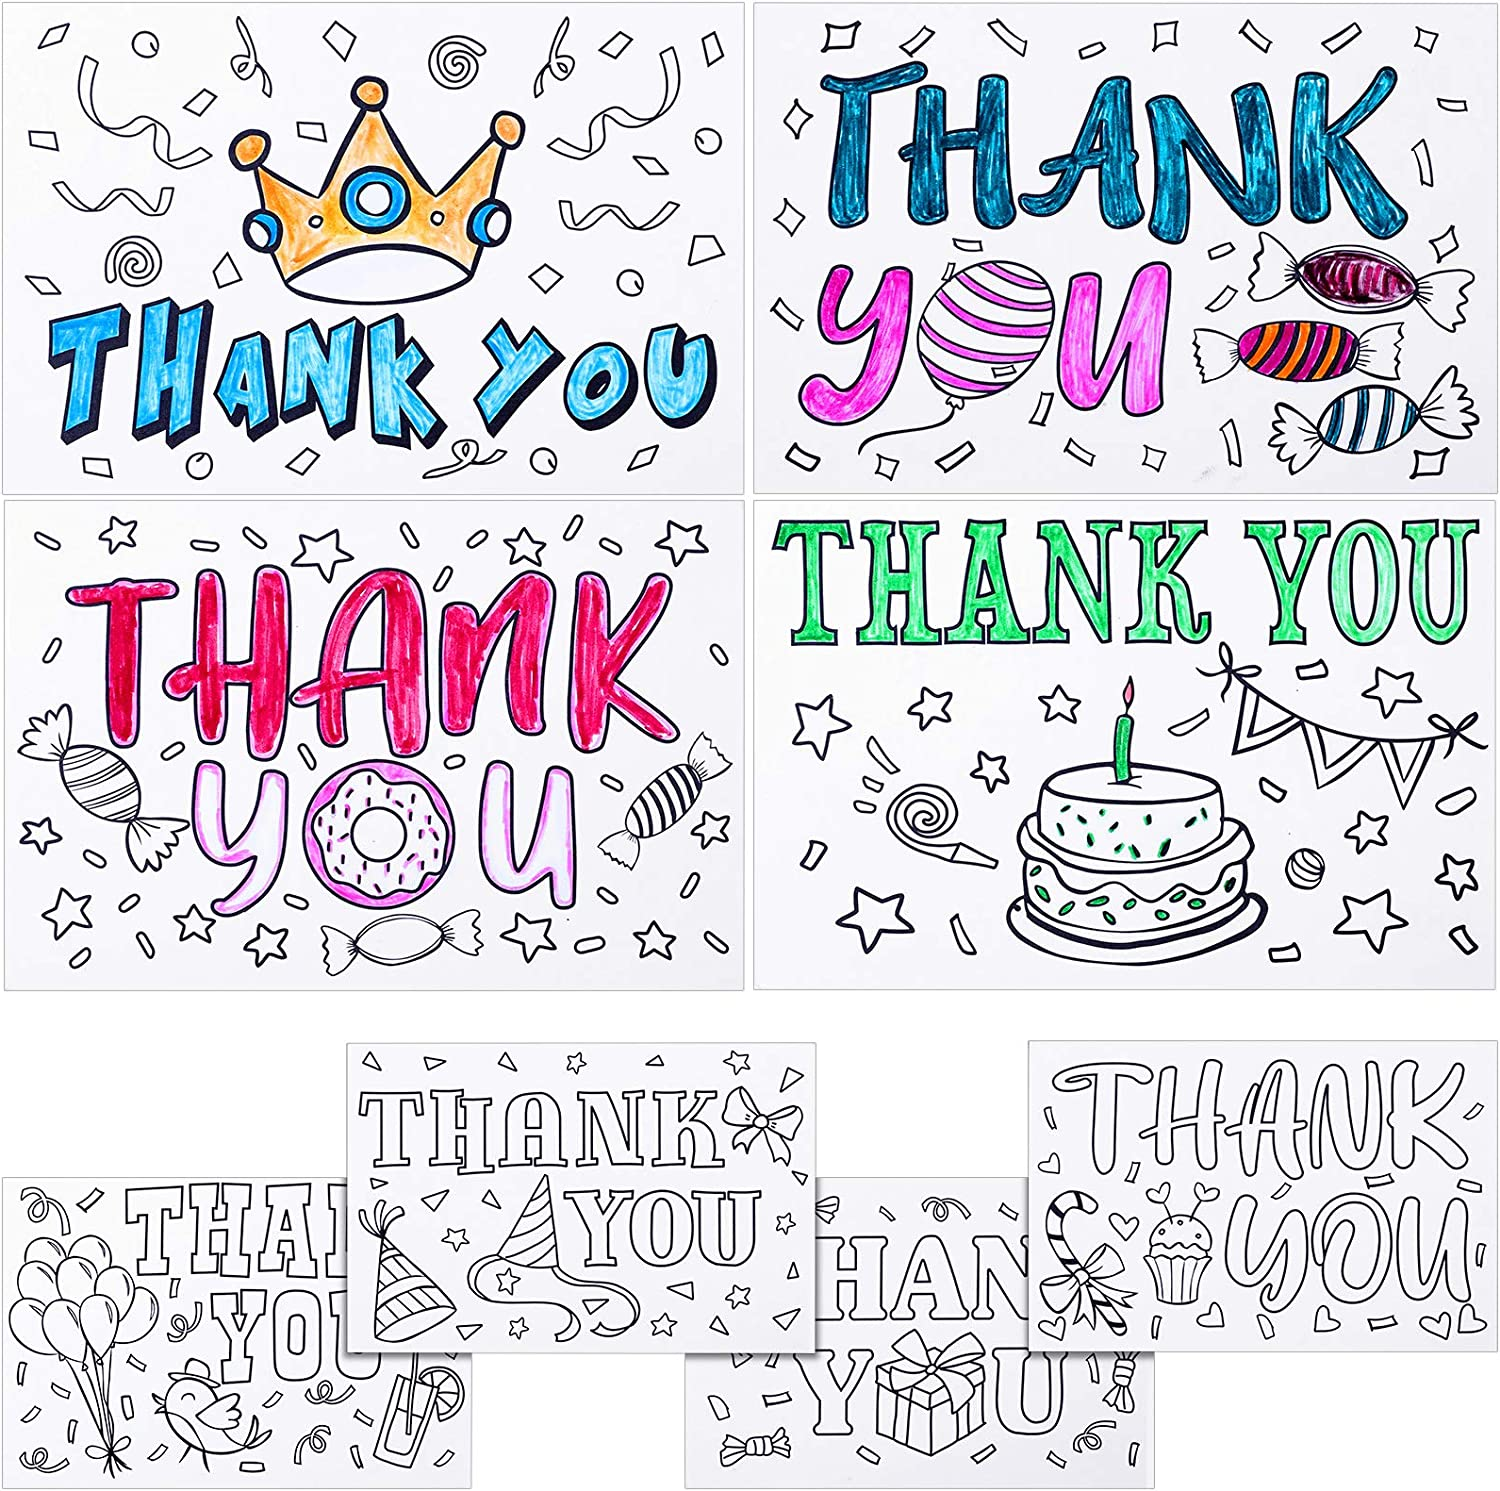 24 Pieces Kid's Coloring Thank You Cards with 24 Pieces Envelopes Set Coloring Thank You Postcards for Fun Birthday and Holiday Expressing Grateful for School and Family